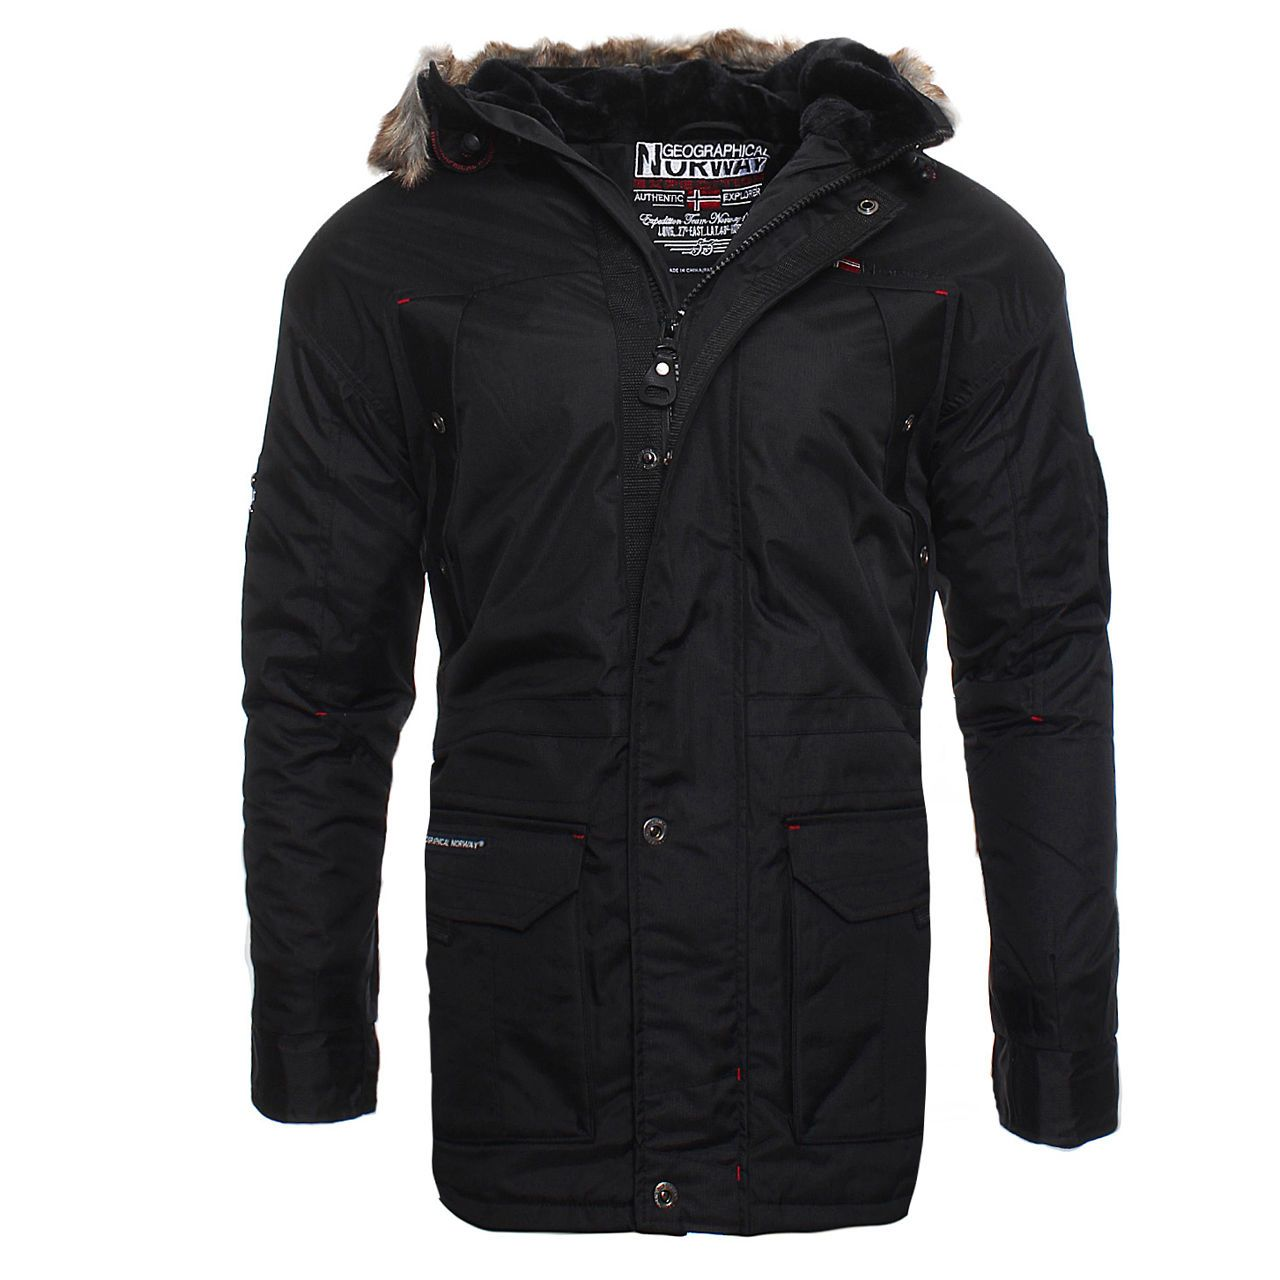 a82fc0bb2b2b Details about Geographical Norway Agada Men's Winter Jacket Parka ...